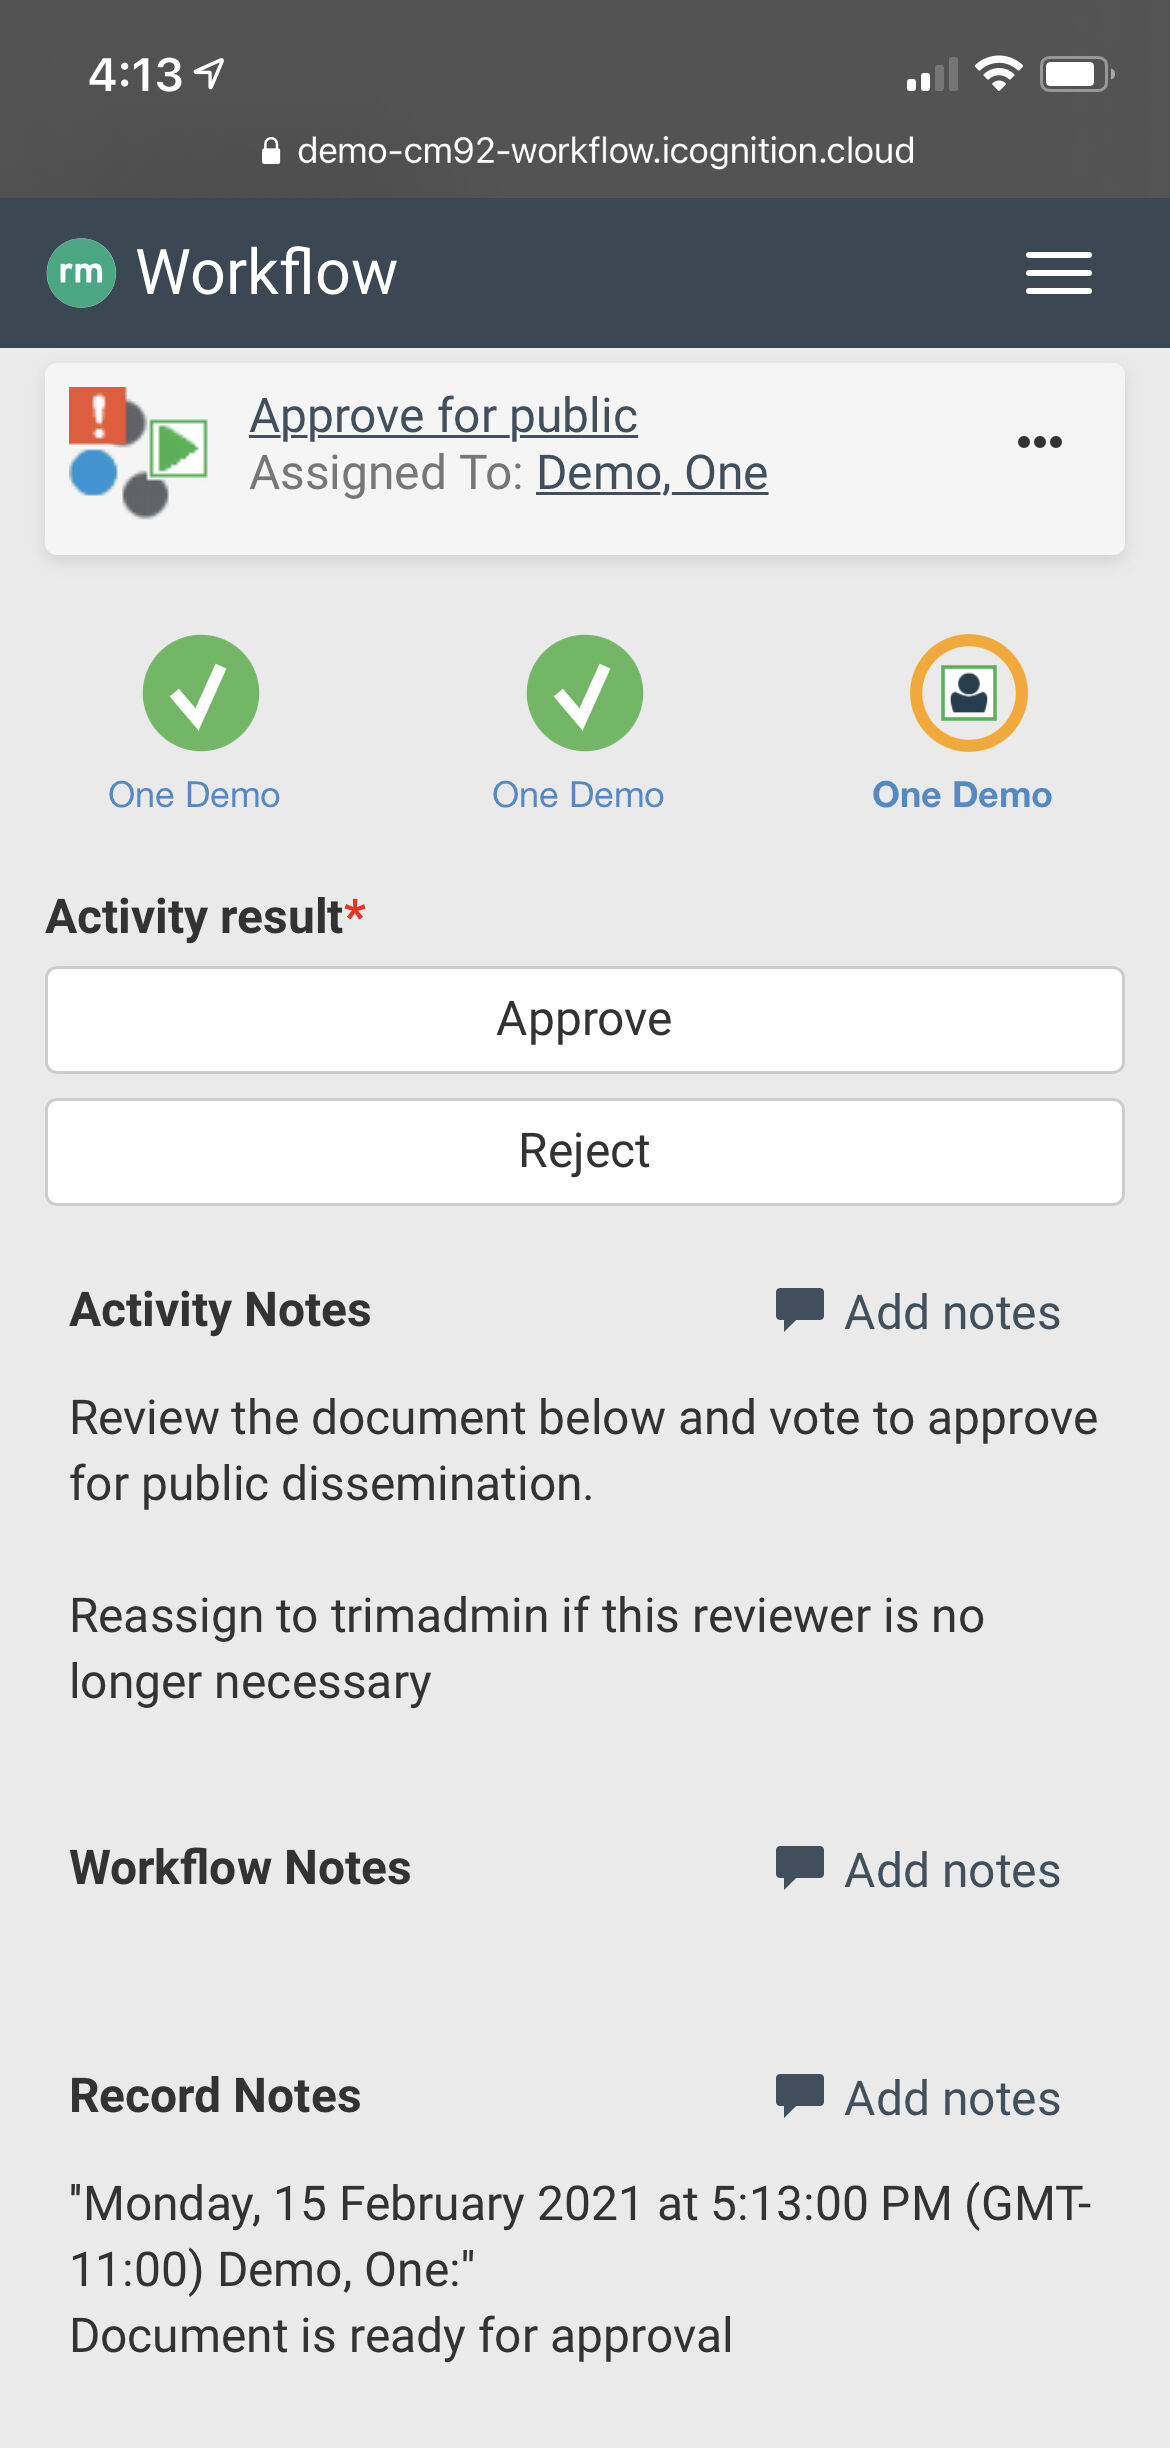 iCognition's RM Workflow is a mobile friendly application that not only allows you to search for records, review, and approve workflows from your mobile phone, but with Office365 you can even edit live Content Manager records wherever you are!